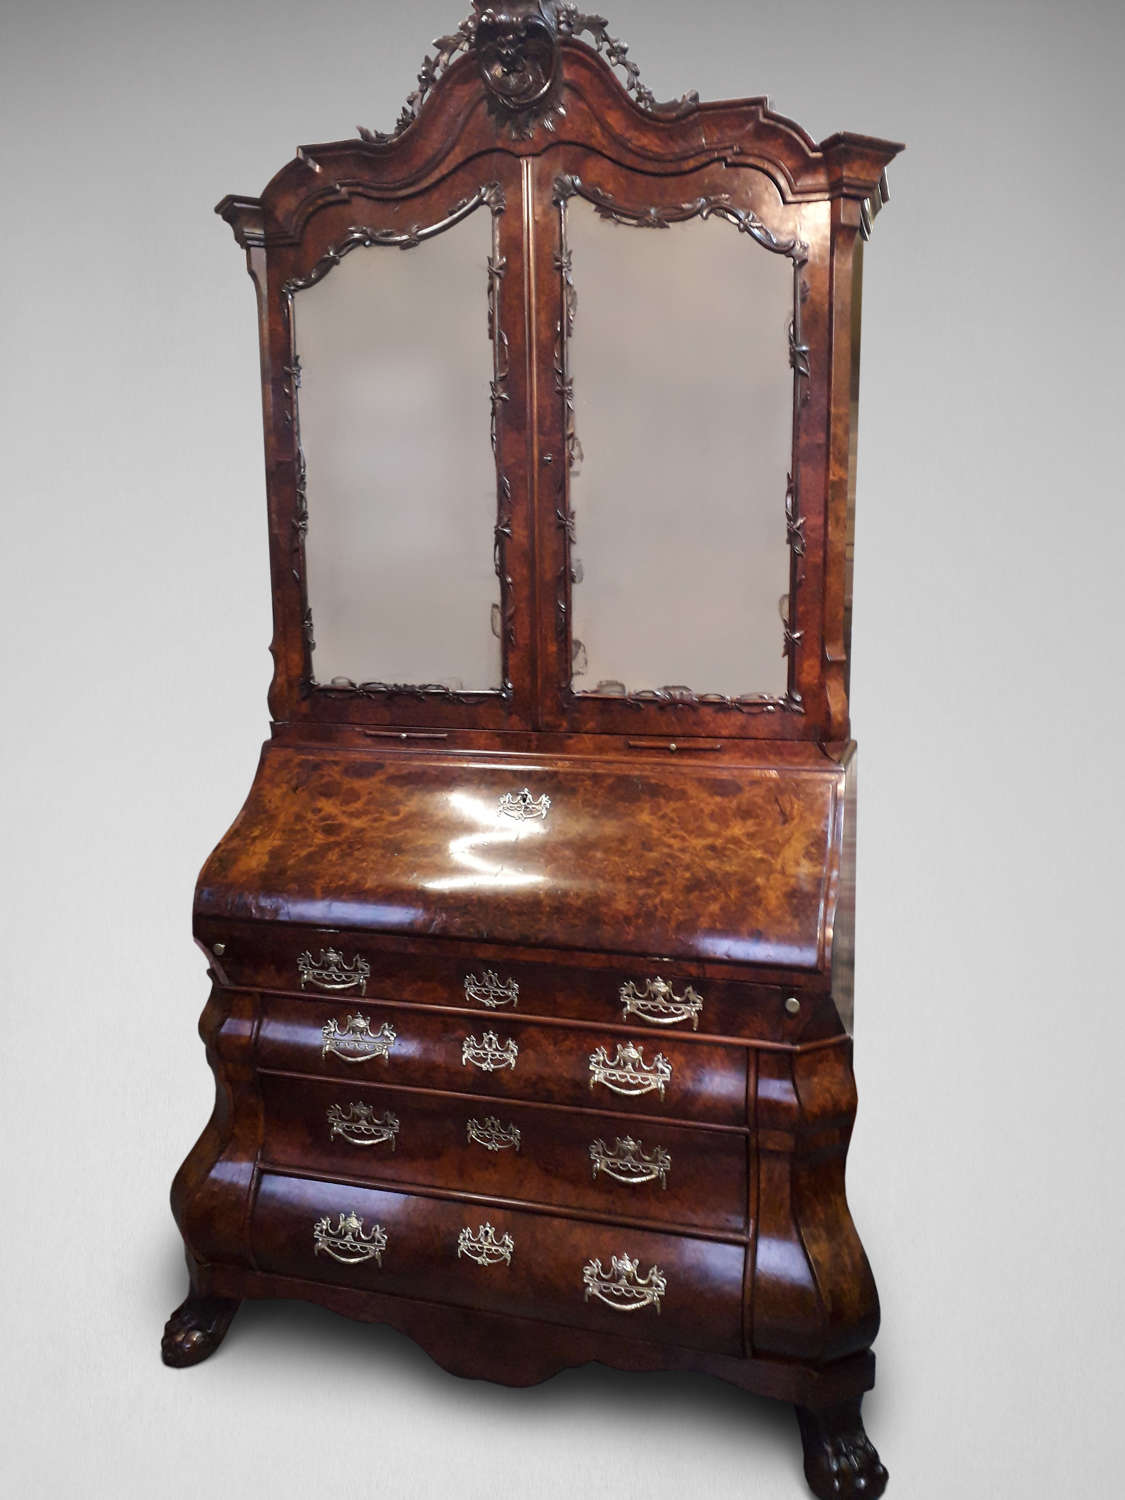 A BURR WALNUT BUREAU BOOKCASE